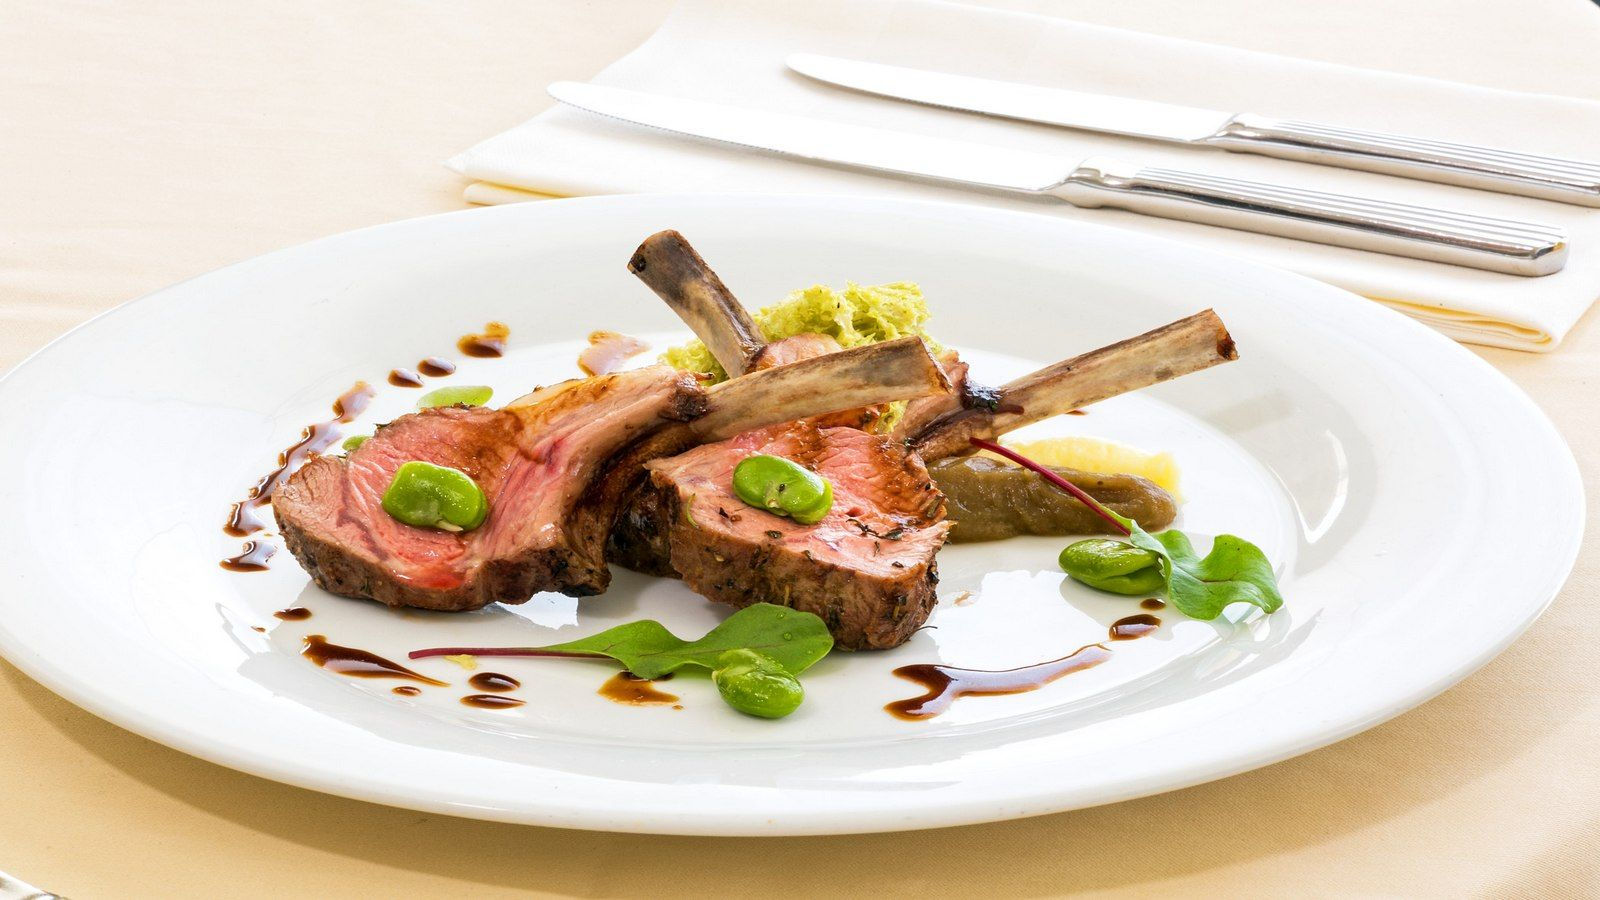 "=""Lamb-with-madeira-jus-eggplant-and-broad-beans-le-meridien-lav""/"